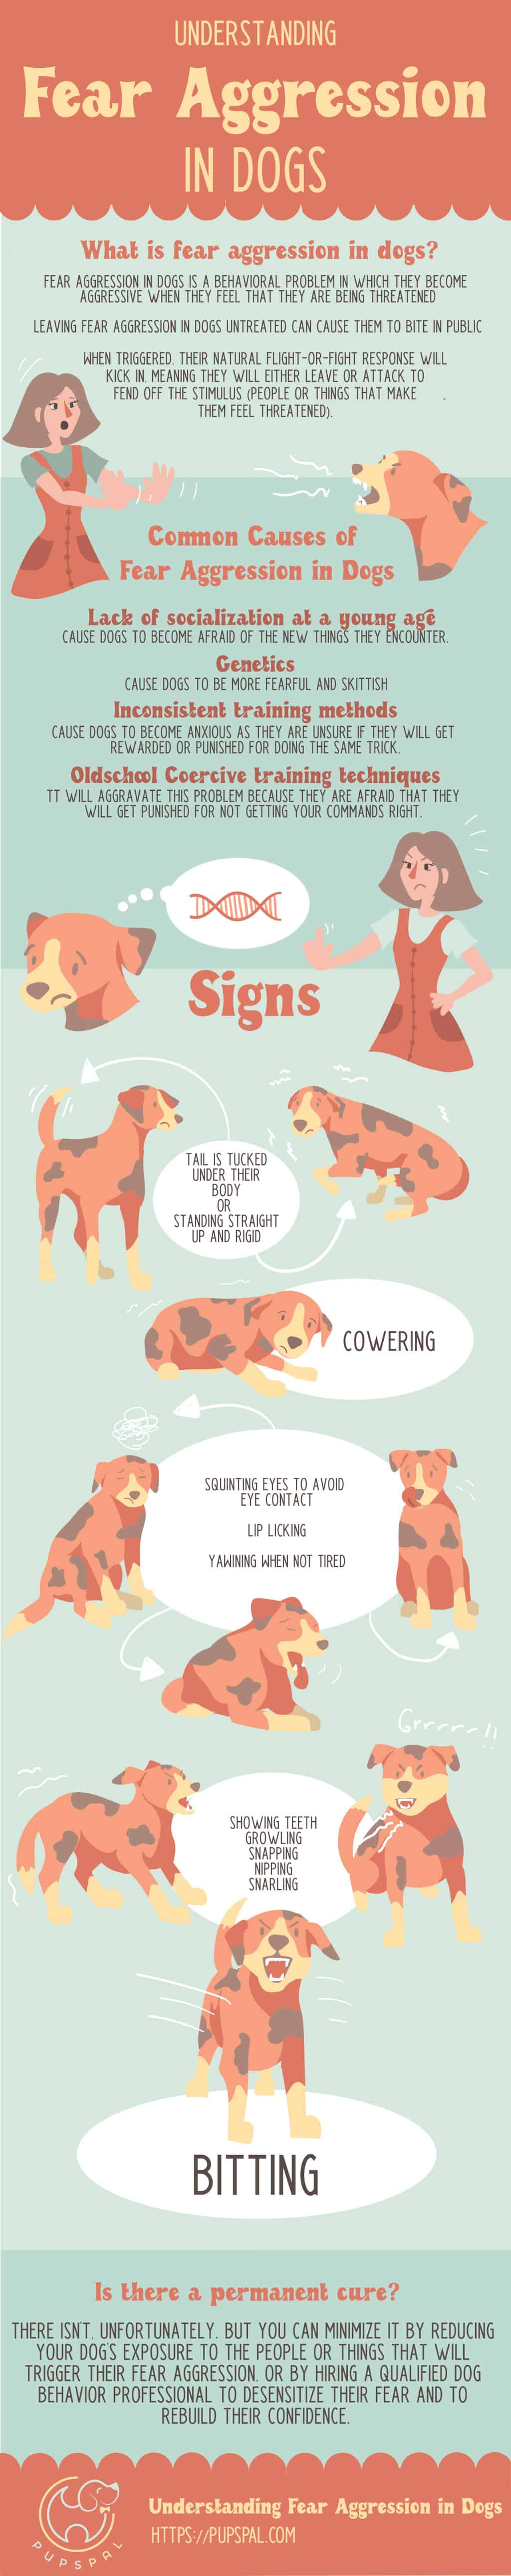 Fear Aggression in Dogs Infographic